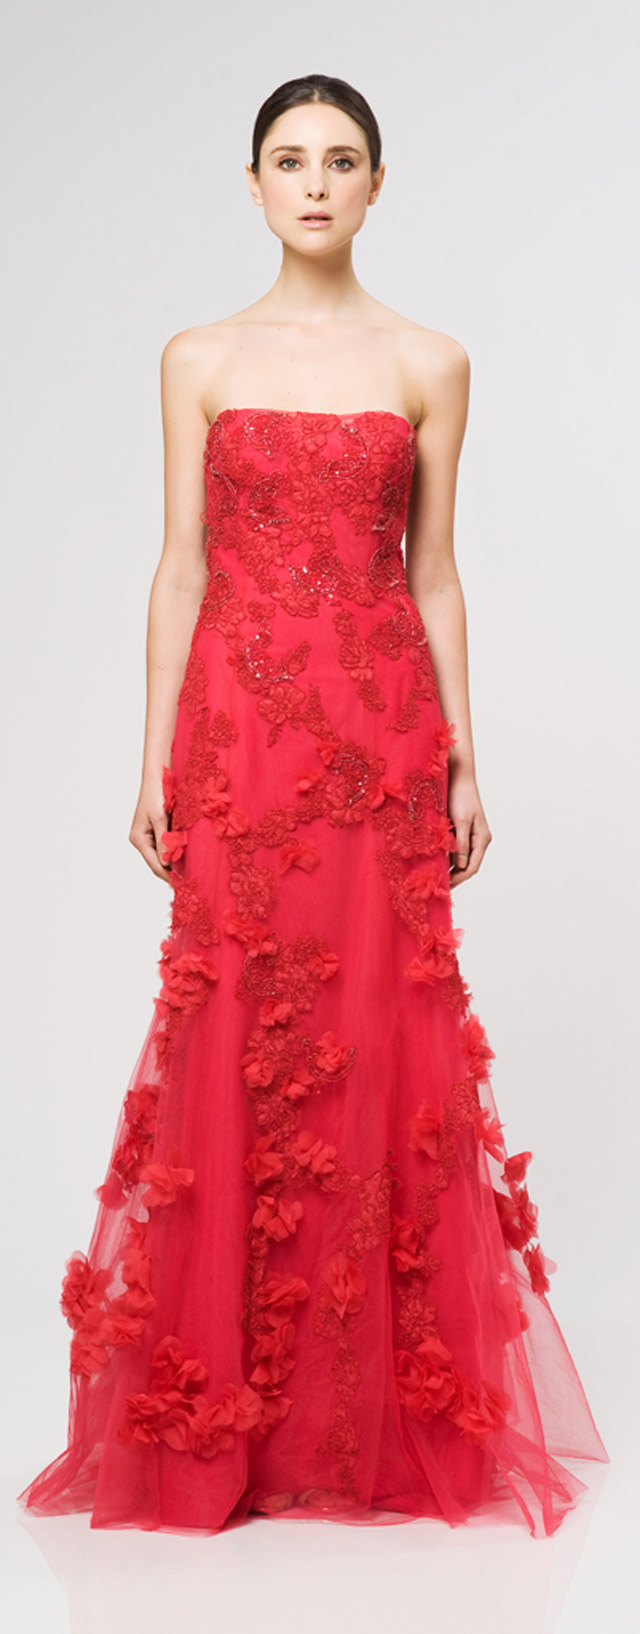 Reem Acra Ready To Wear Spring 2013 Collection (27)